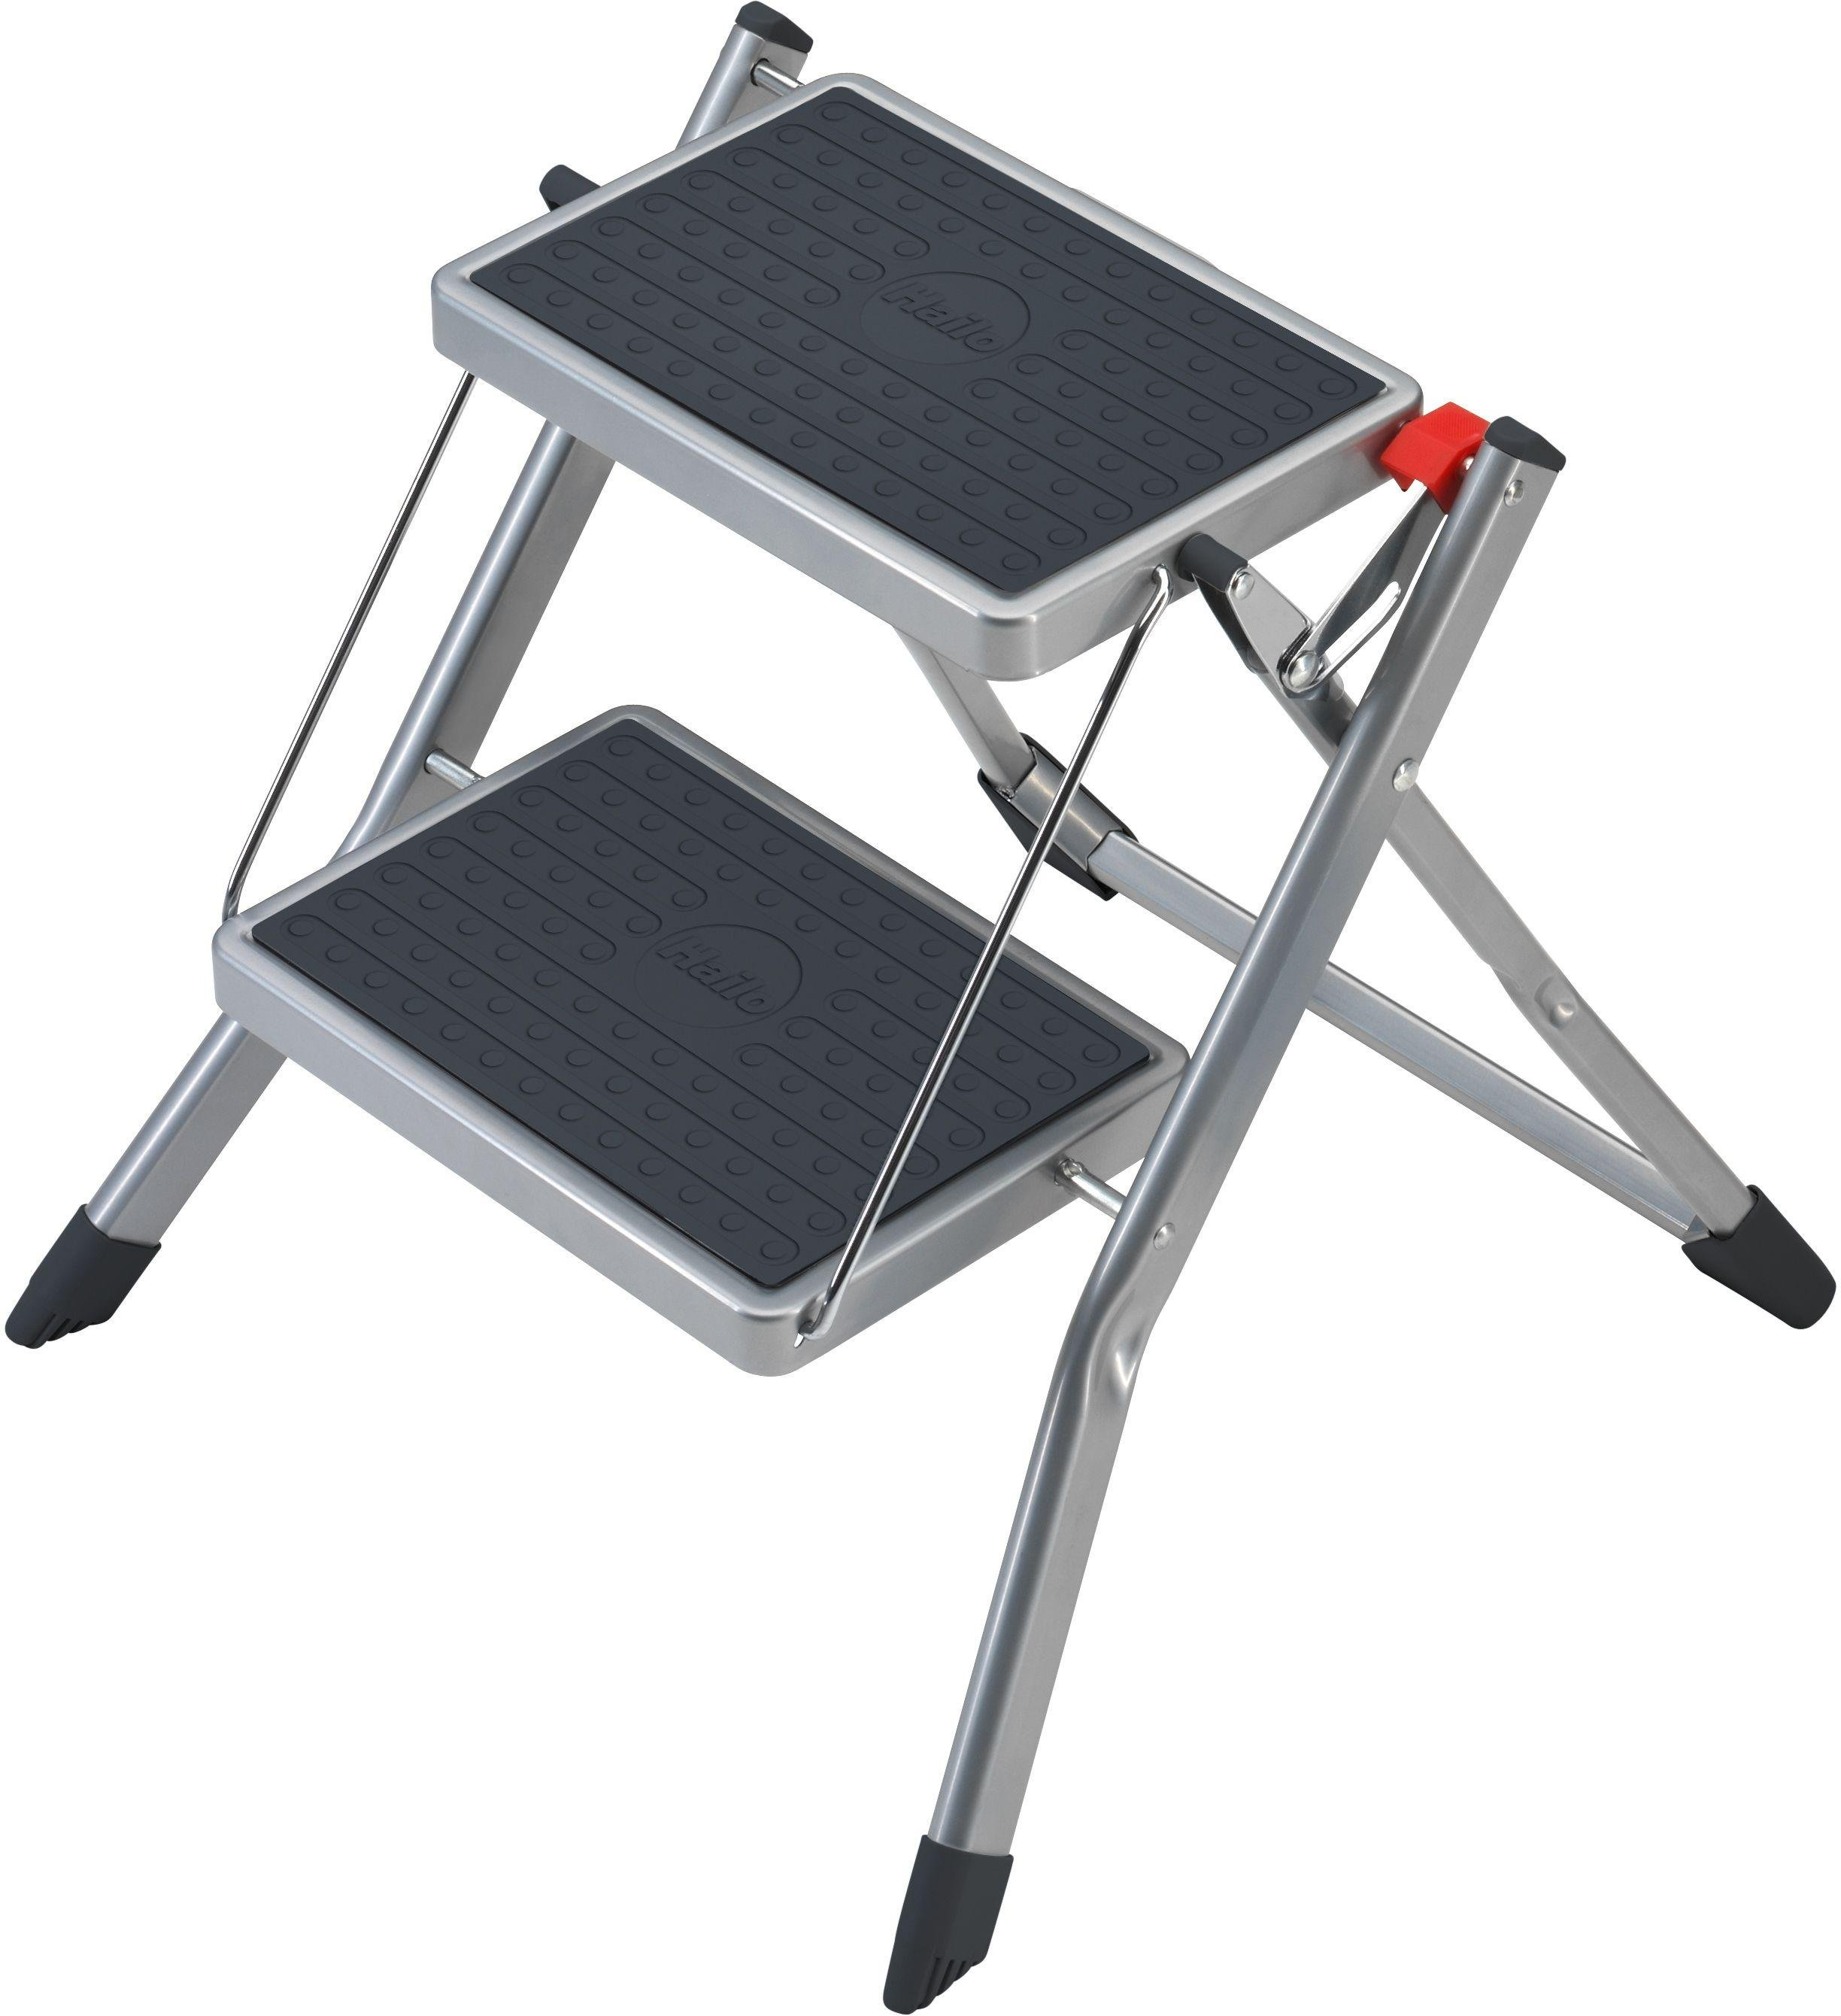 Click to zoom  sc 1 st  Argos & Buy Hailo Mini K Step Stool - Grey at Argos.co.uk - Your Online ... islam-shia.org